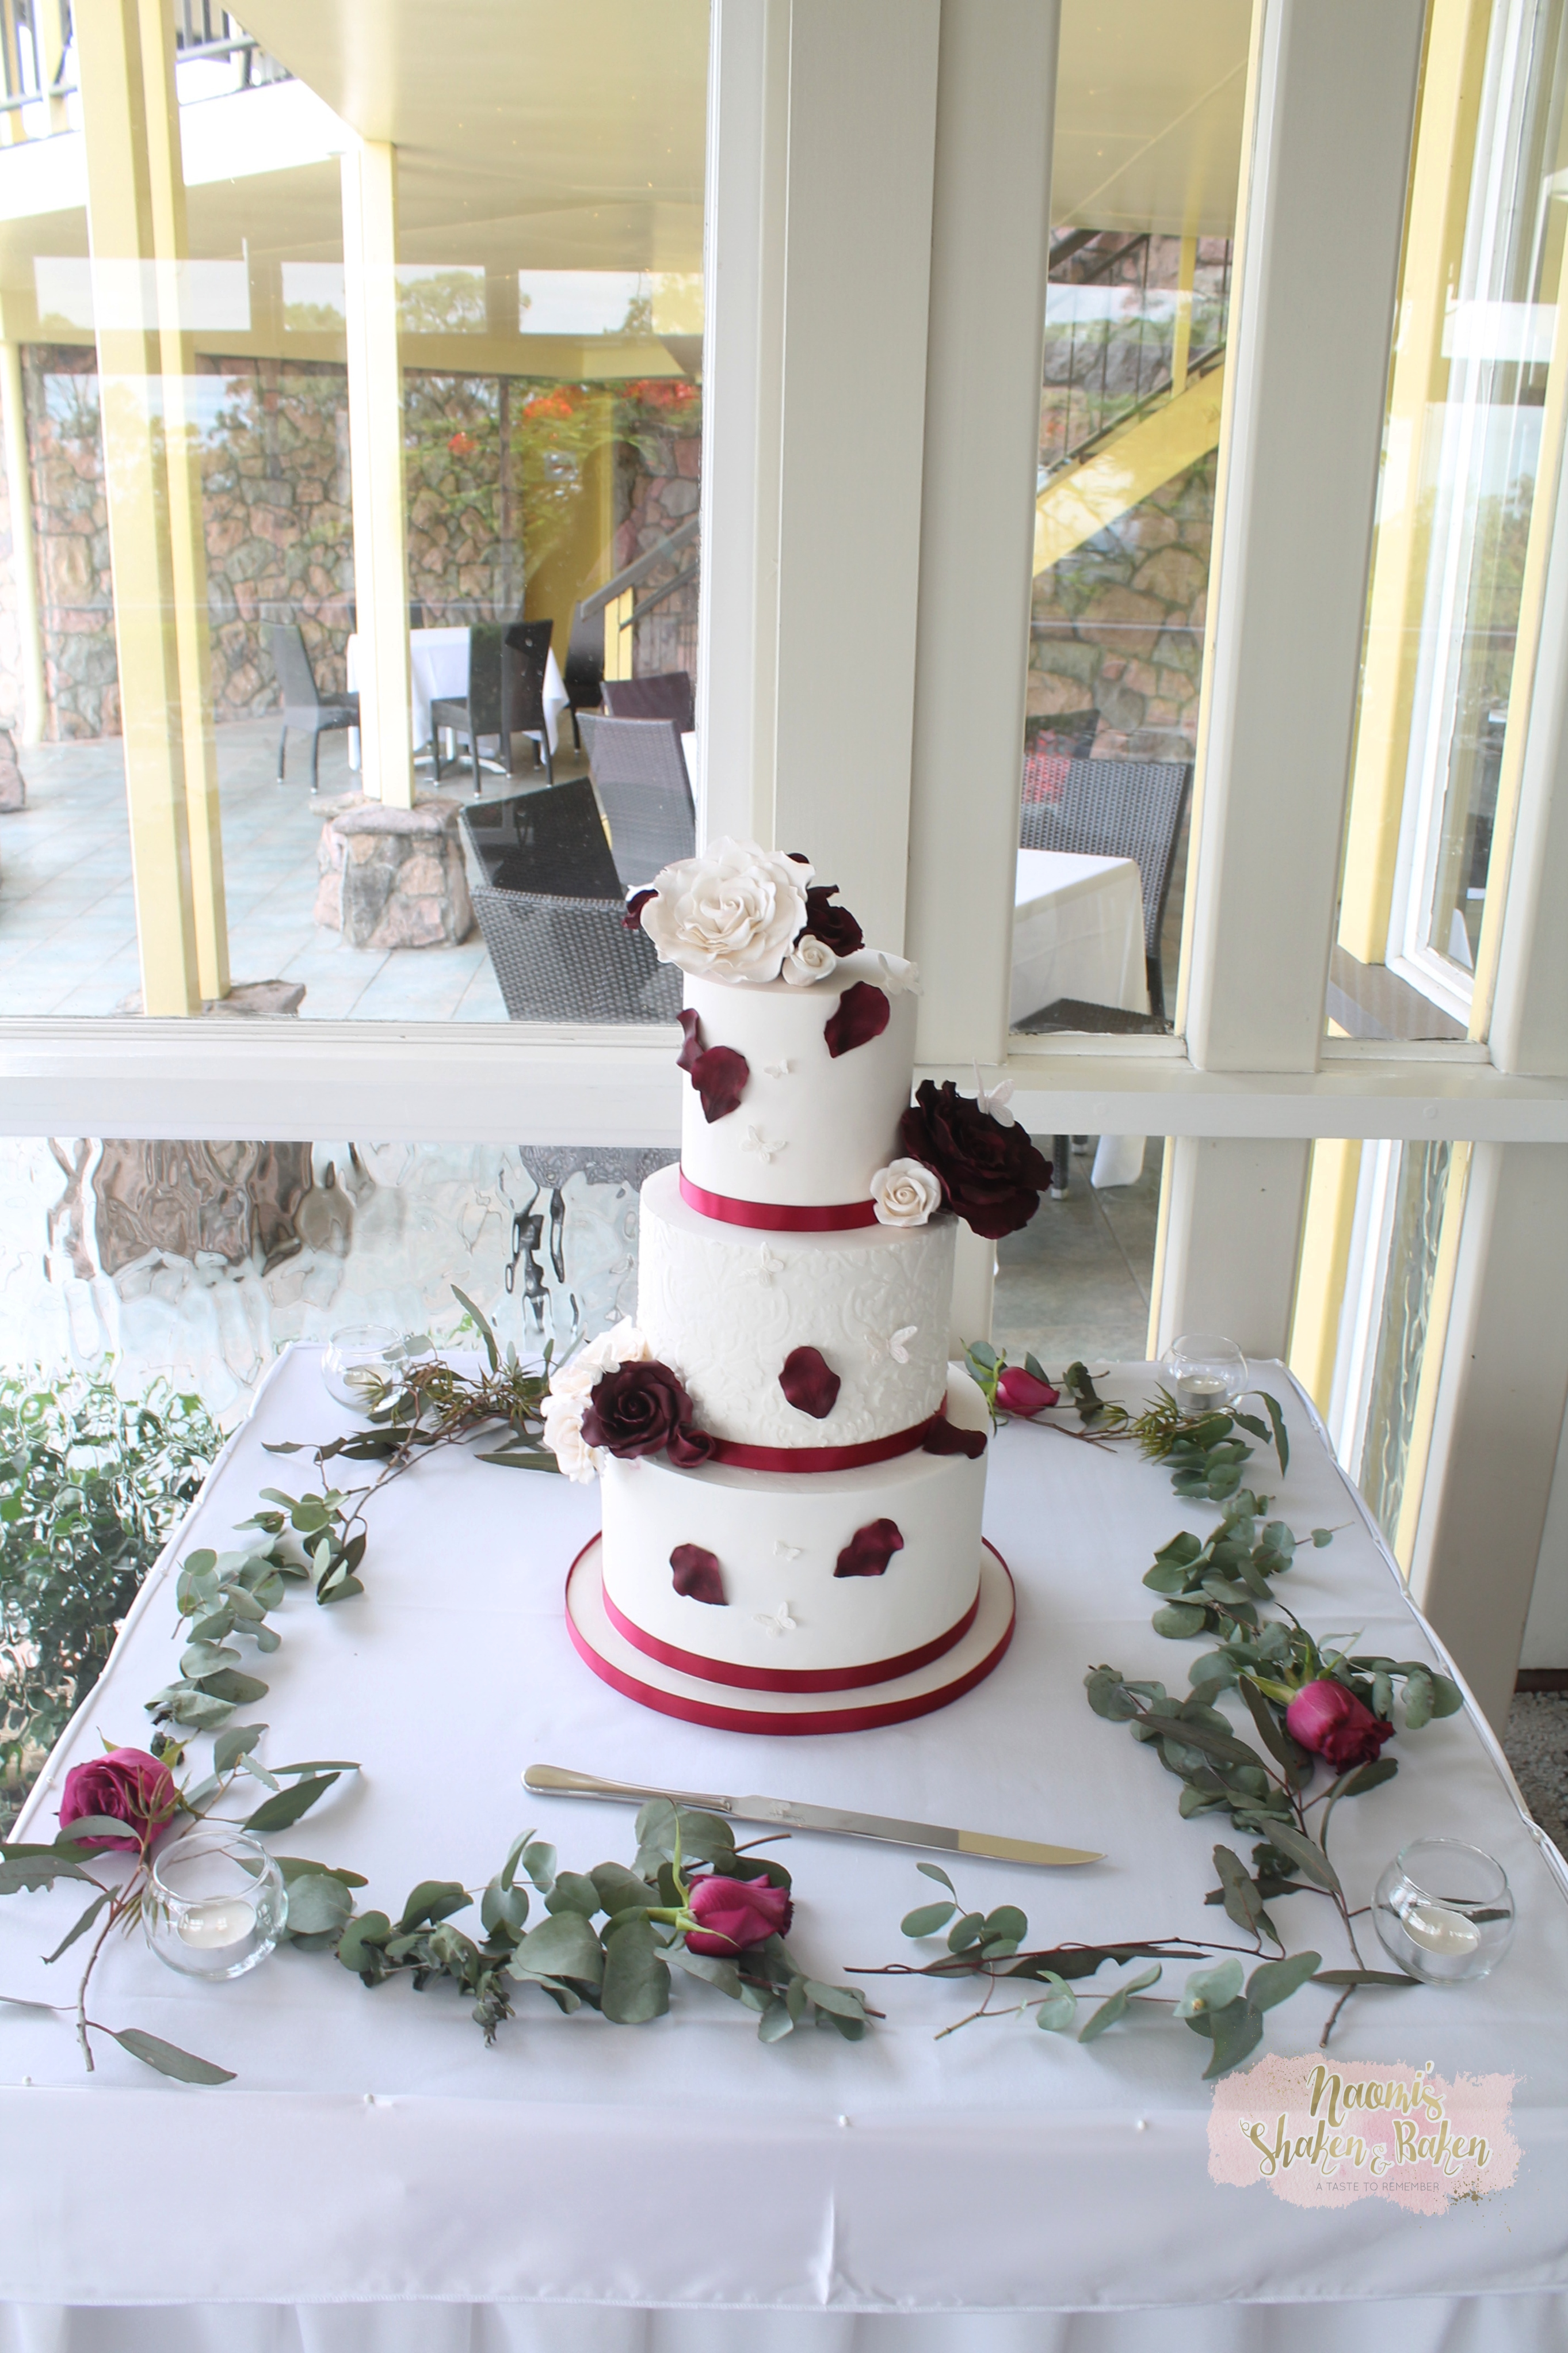 ‎Summit Restaurant wedding cake